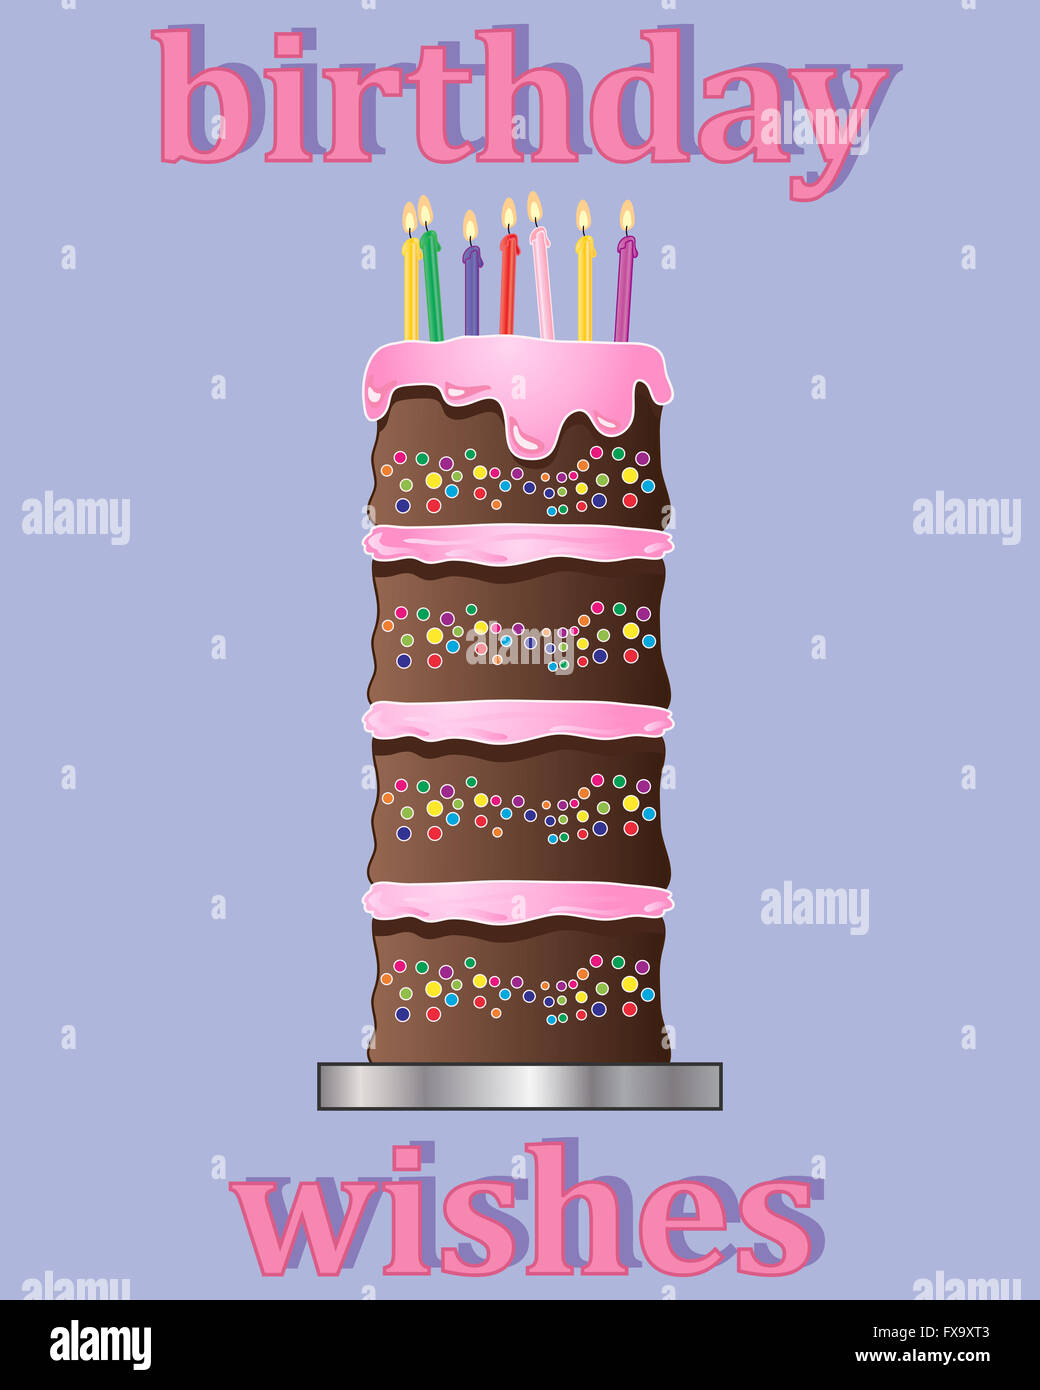 an illustration of a birthday greeting card design with multi layered chocolate cake decorated with pink frosting - Stock Image